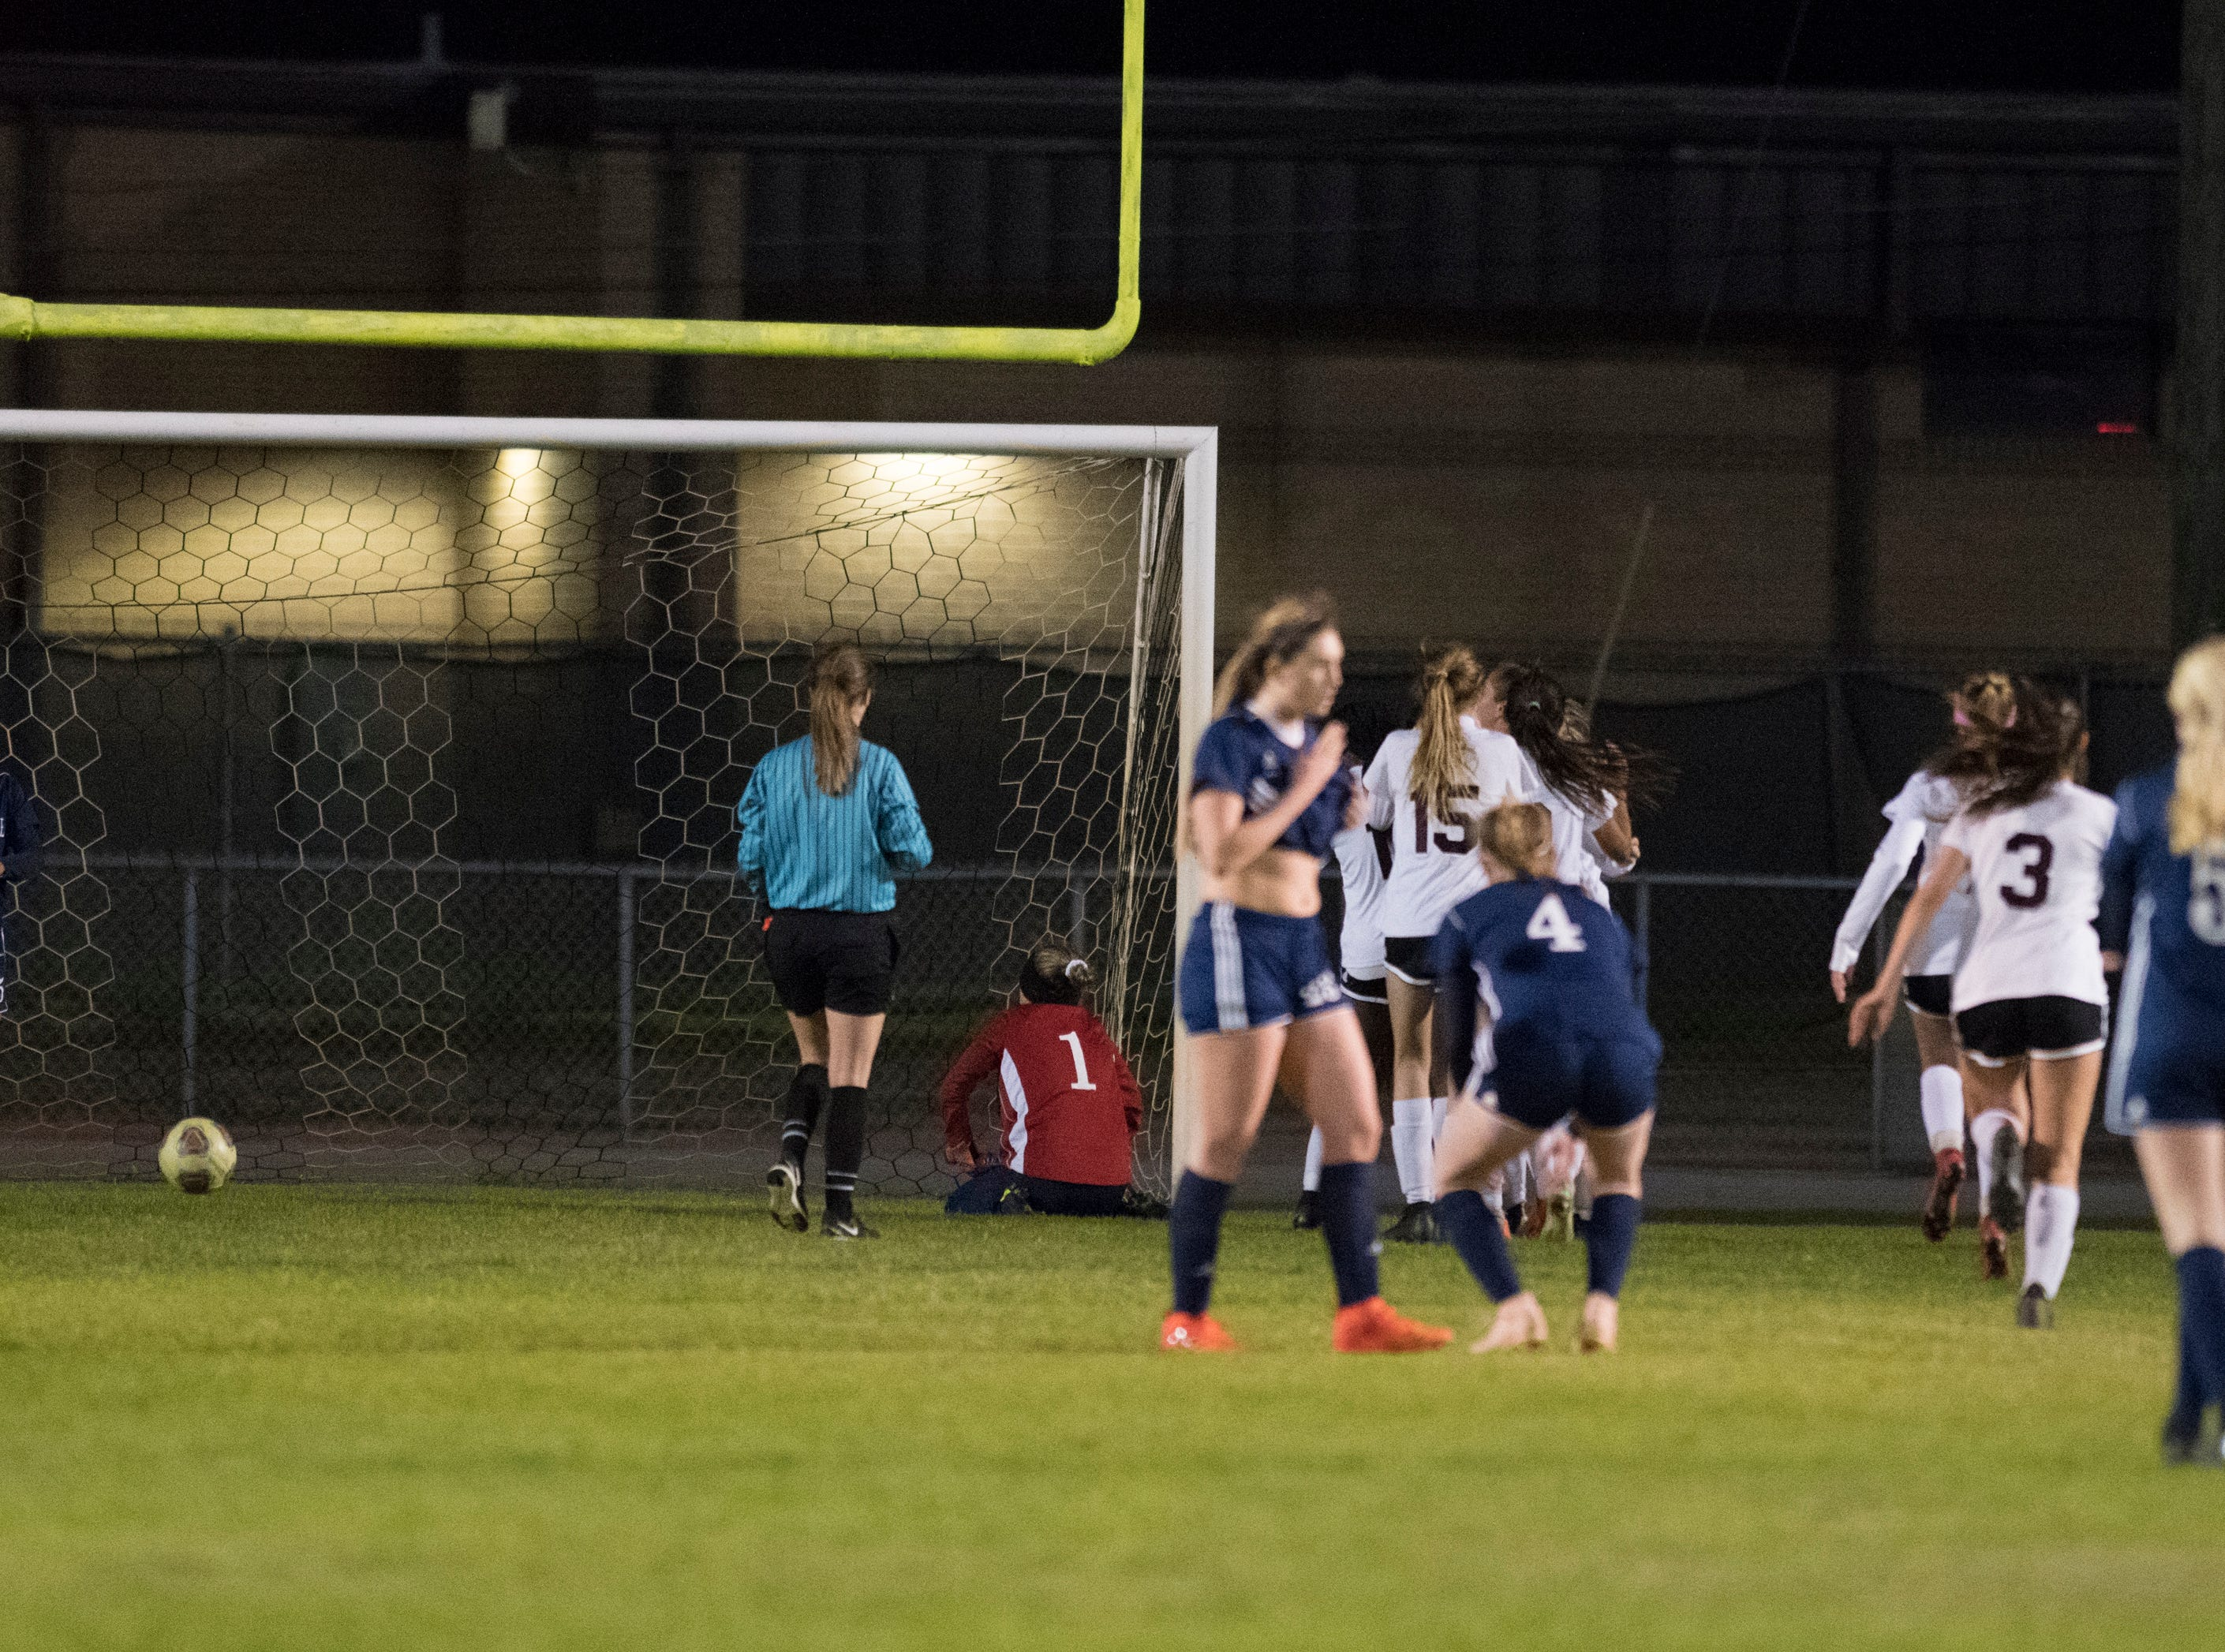 The Eagles celebrate a goal late in the second half of the Niceville vs Gulf Breeze soccer game at Gulf Breeze High School on Thursday, January 10, 2019.  The Eagles won 1-0.